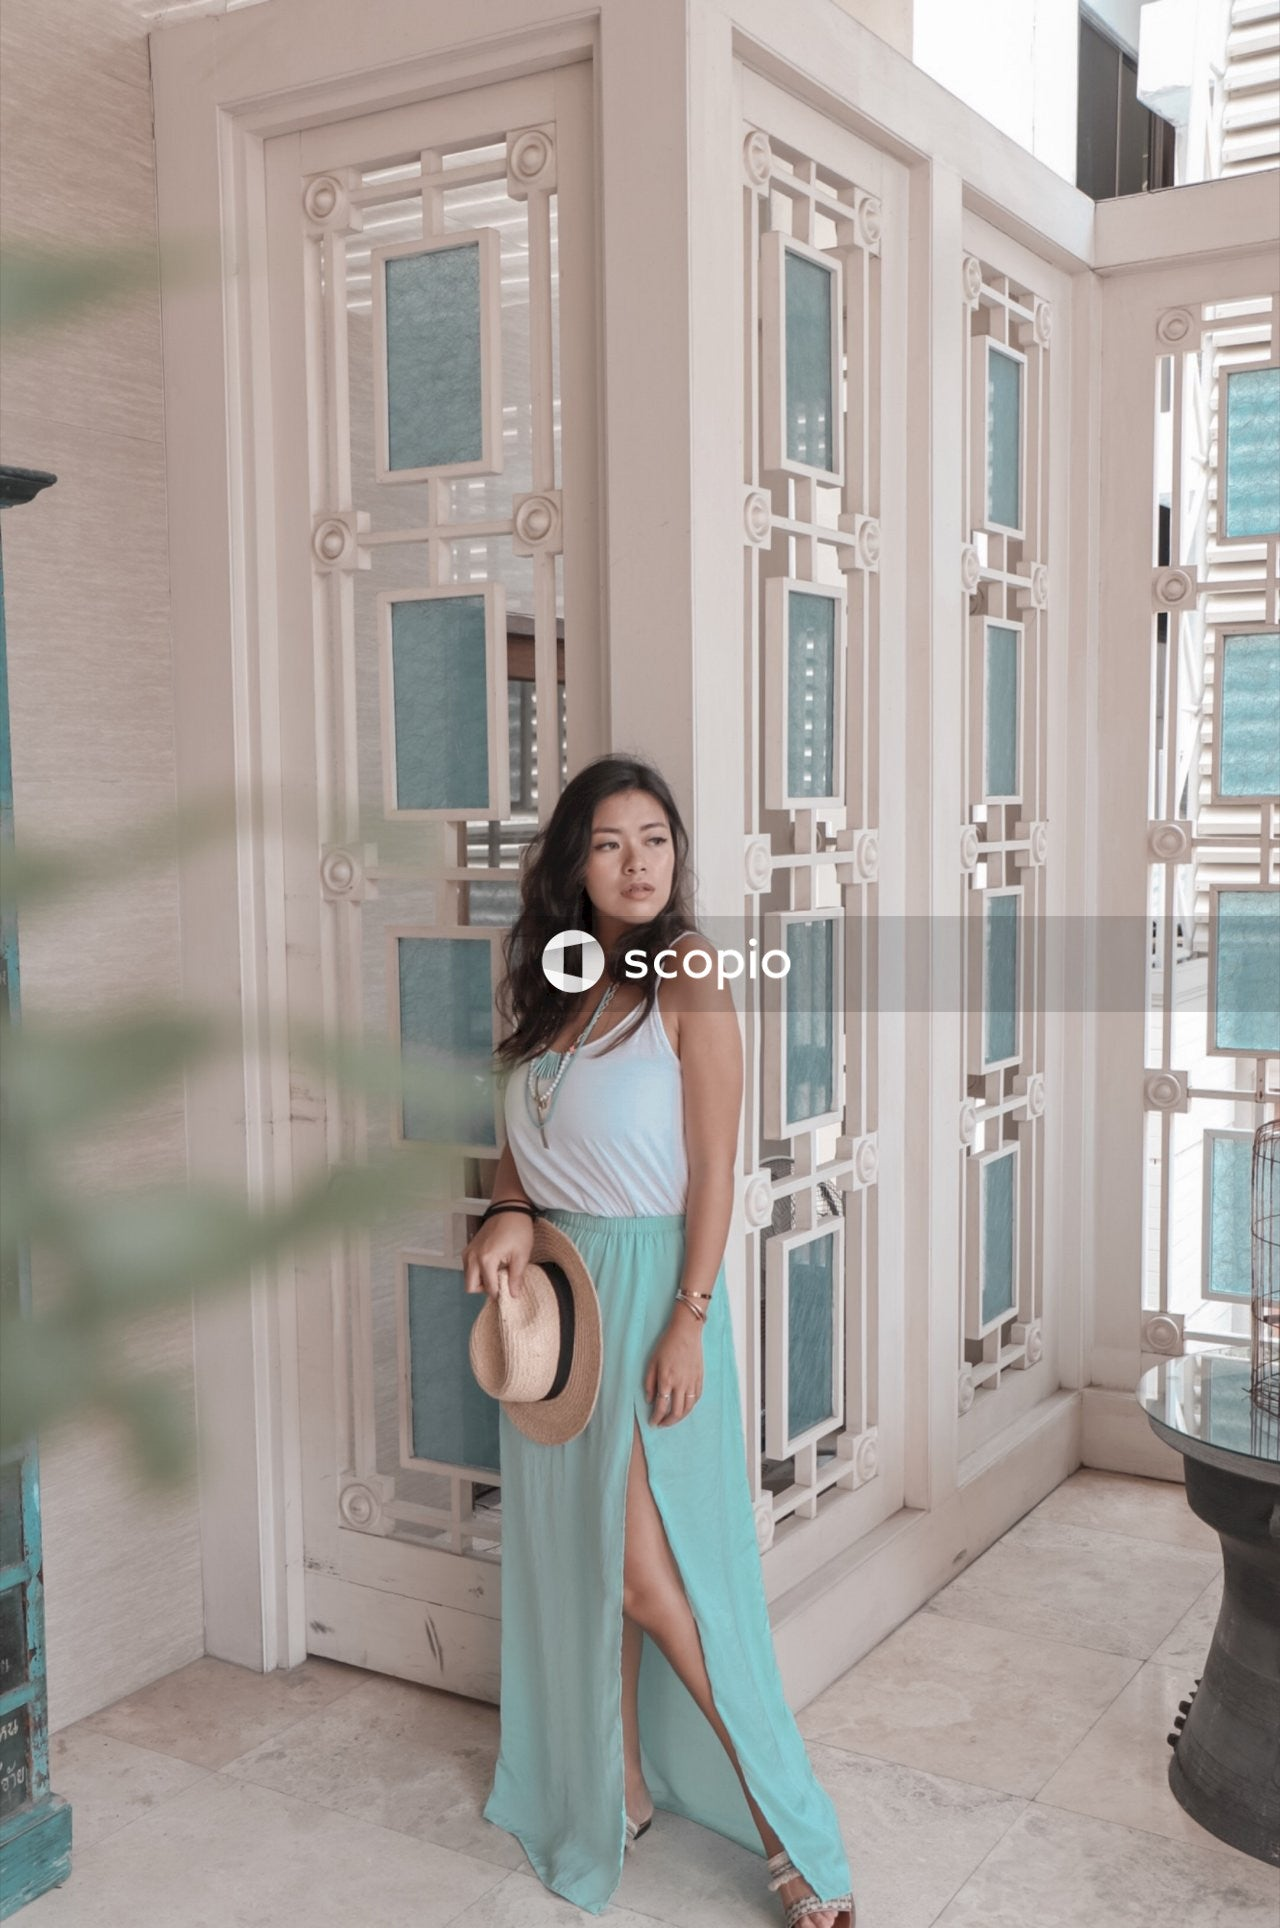 Woman wearing teal dress